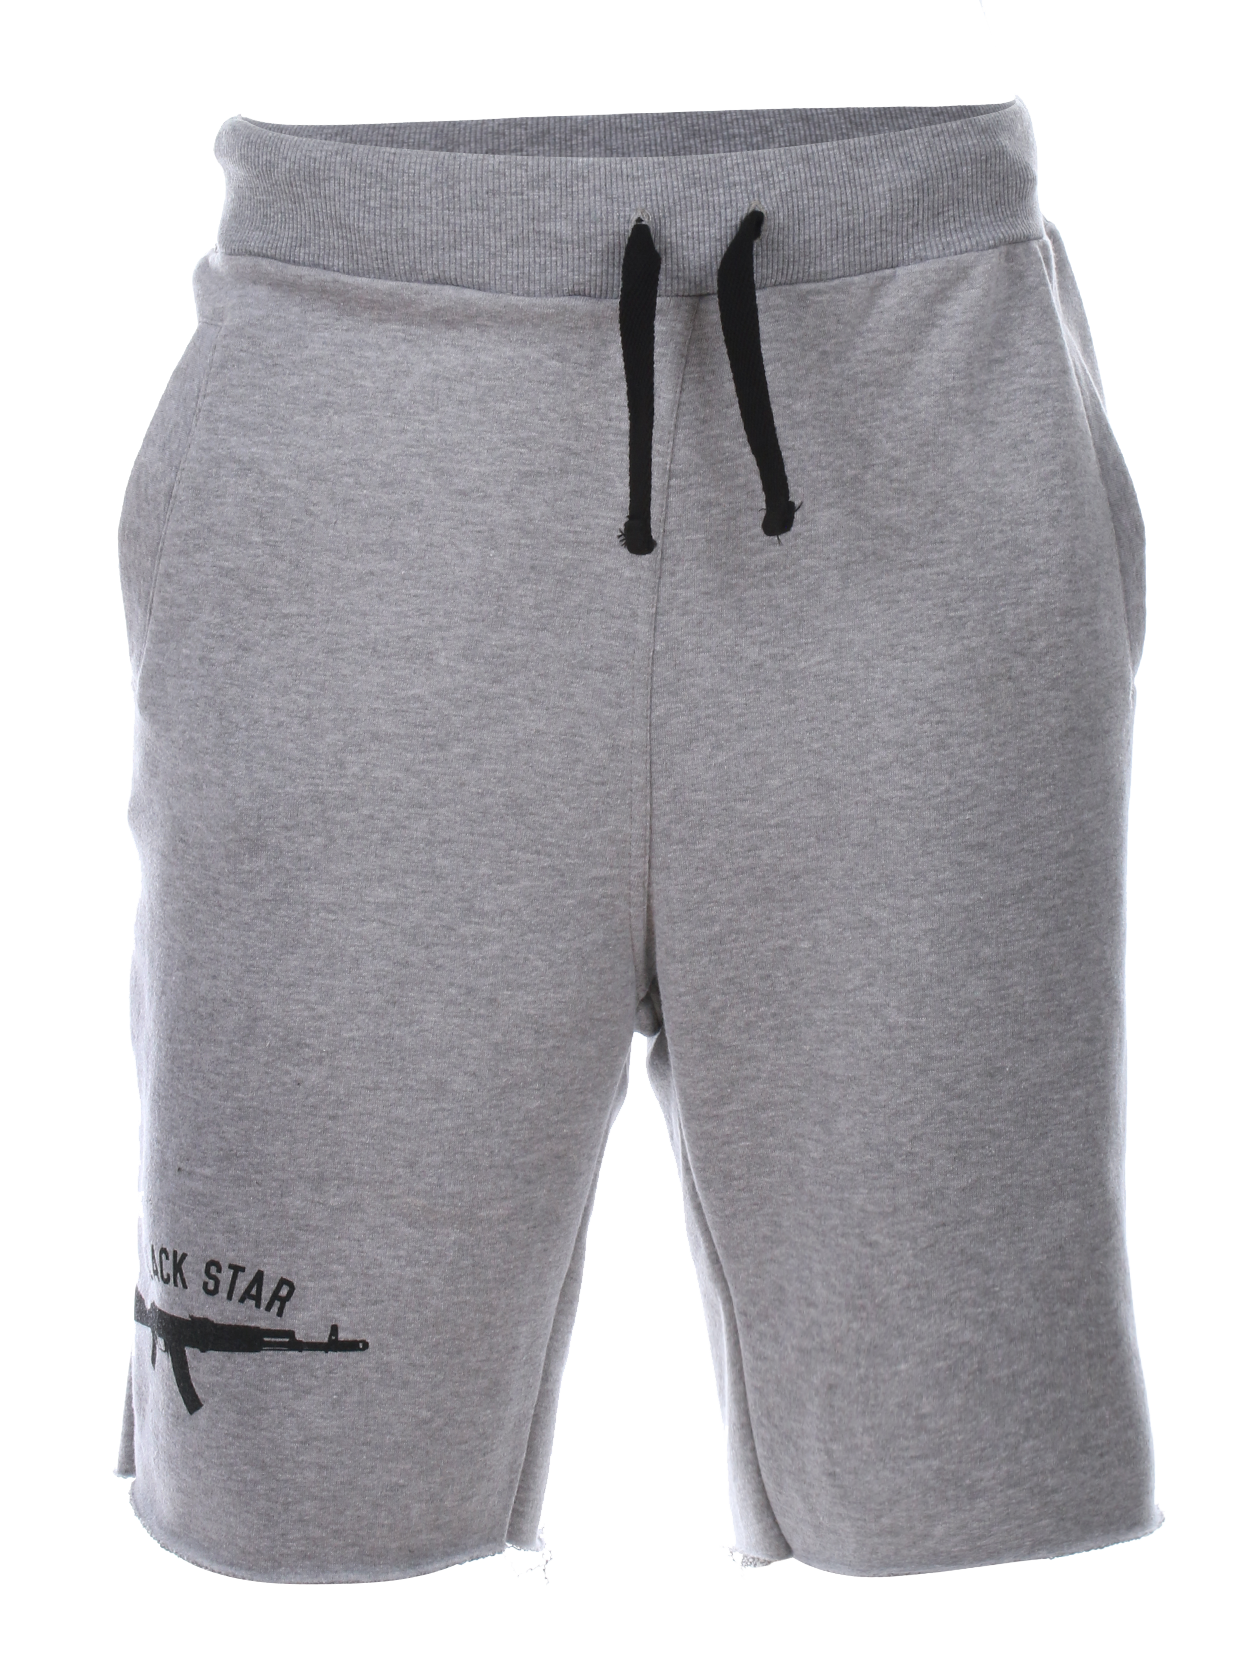 Mens shorts АвтоматMens shorts by Black Star Wear. Knee length, lacing, regular waist, side pockets. 100% natural cotton. AK-47 rifle print on the right side.<br><br>size: XS<br>color: Grey<br>gender: male